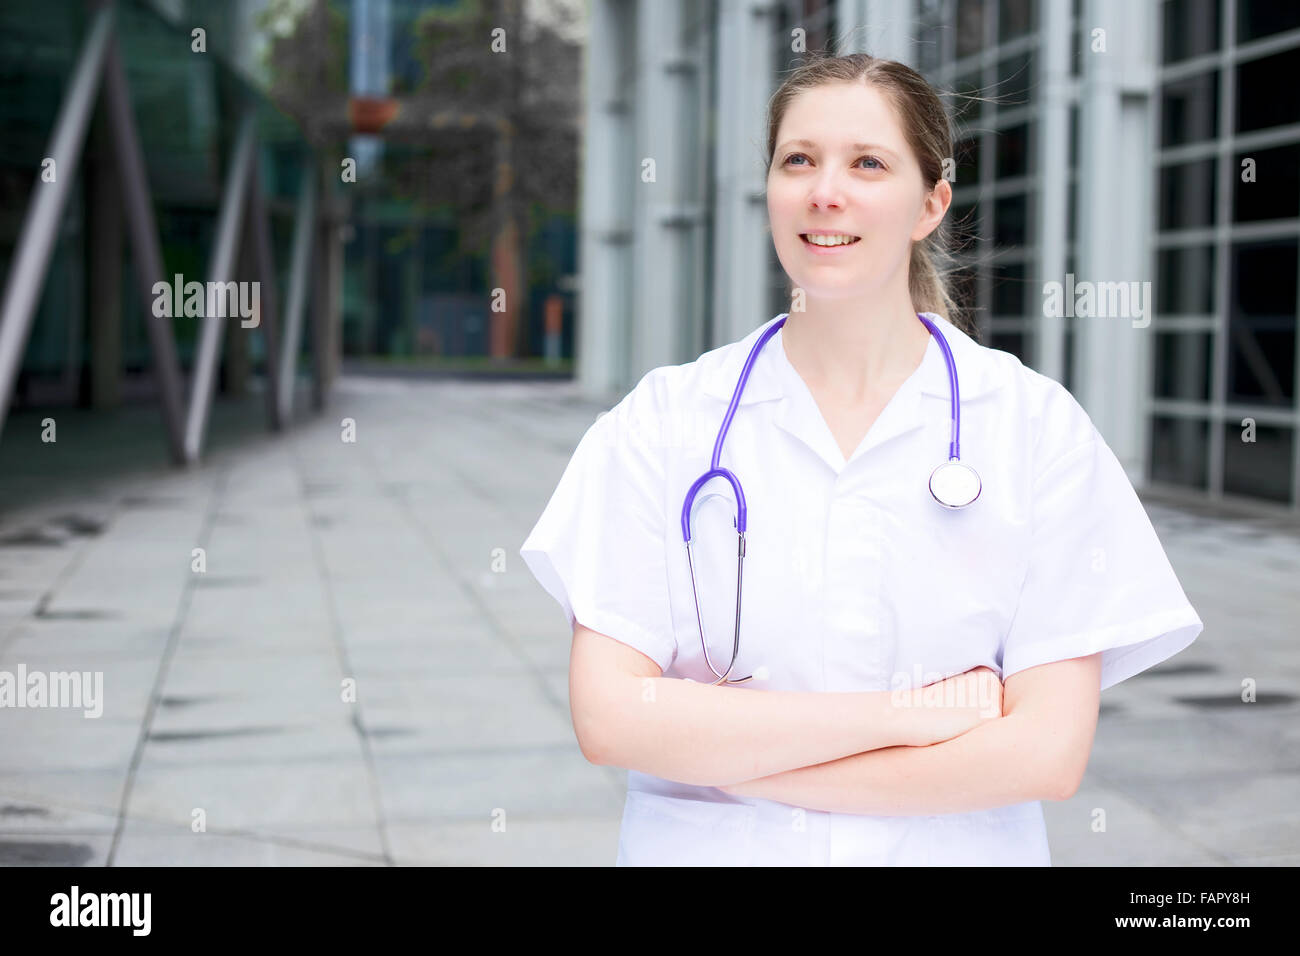 a young doctor standing with her arms crossed - Stock Image